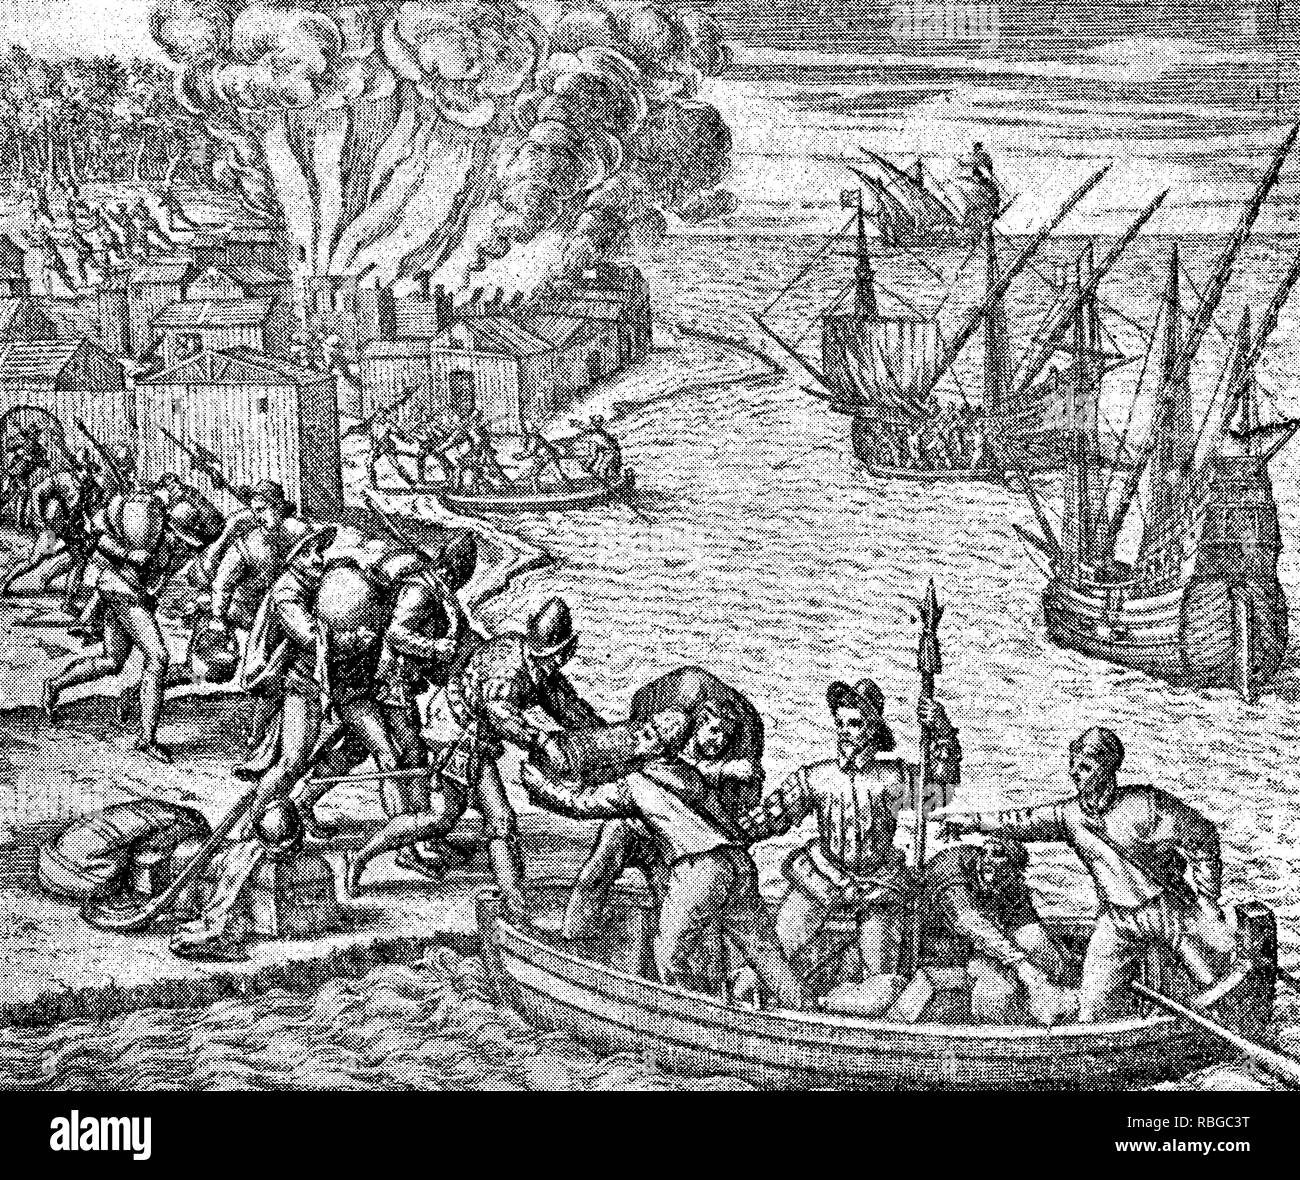 conquest of the Inca empire by Spanish conquistador Francisco Pizarro in XVI century:  Spanish soldiers move their loot on board to the ships - Stock Image